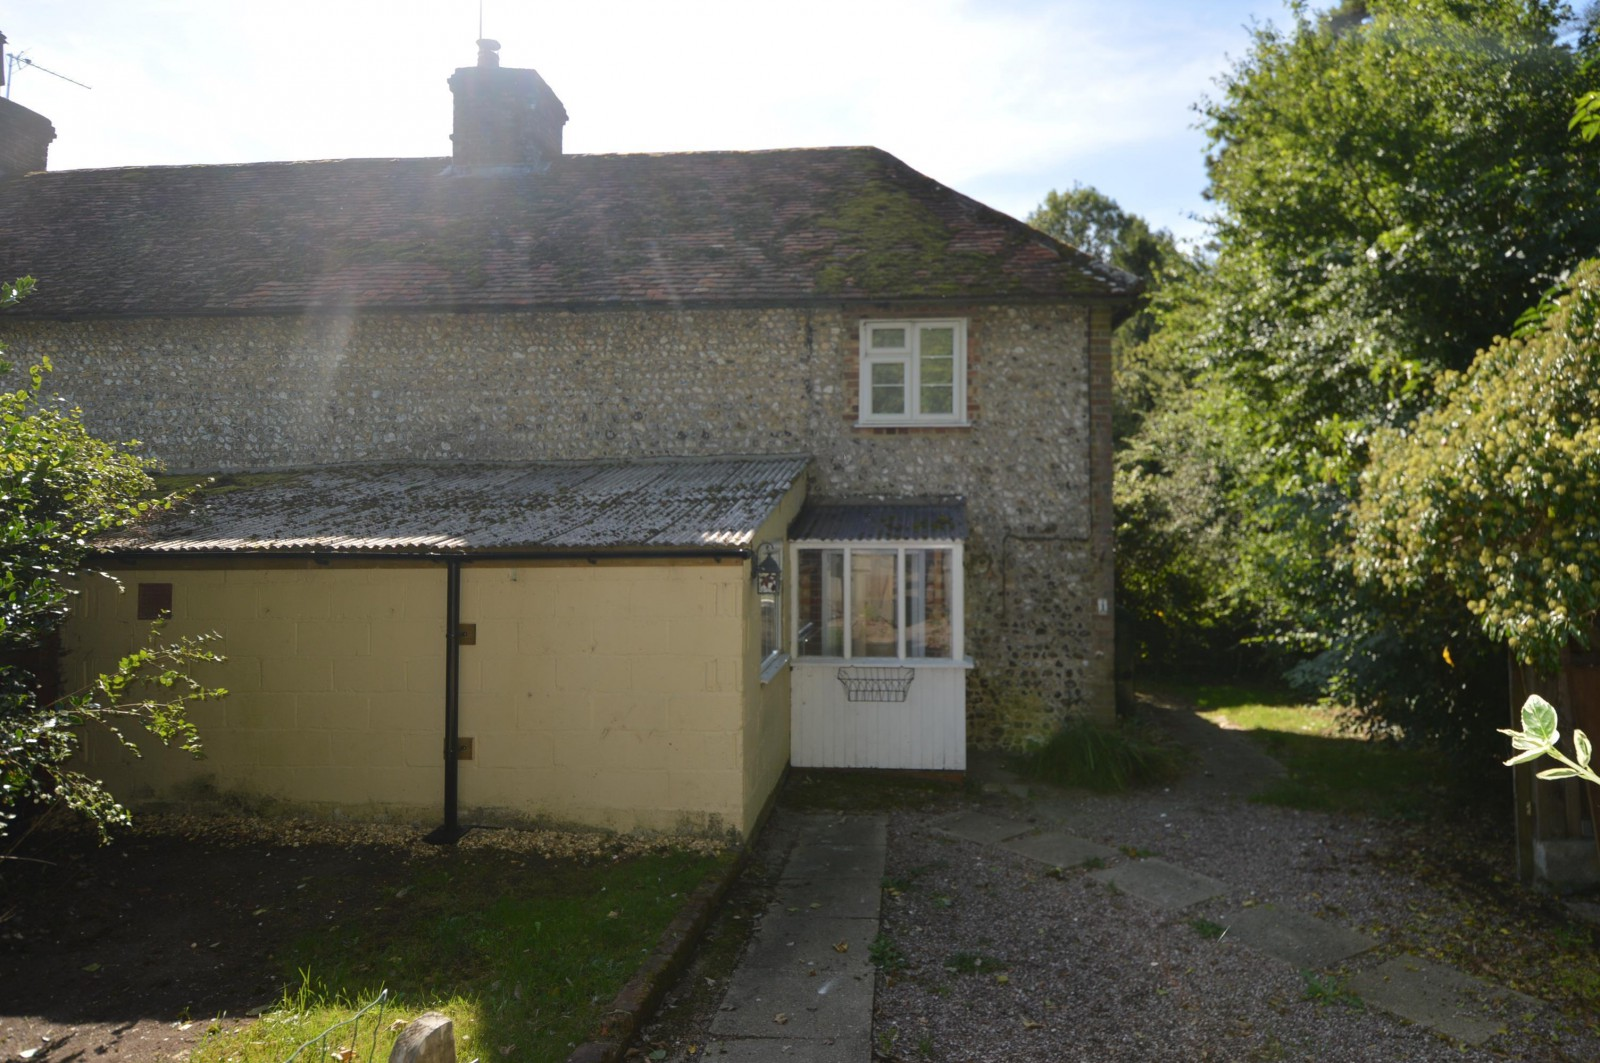 Front Property to let in West Meon